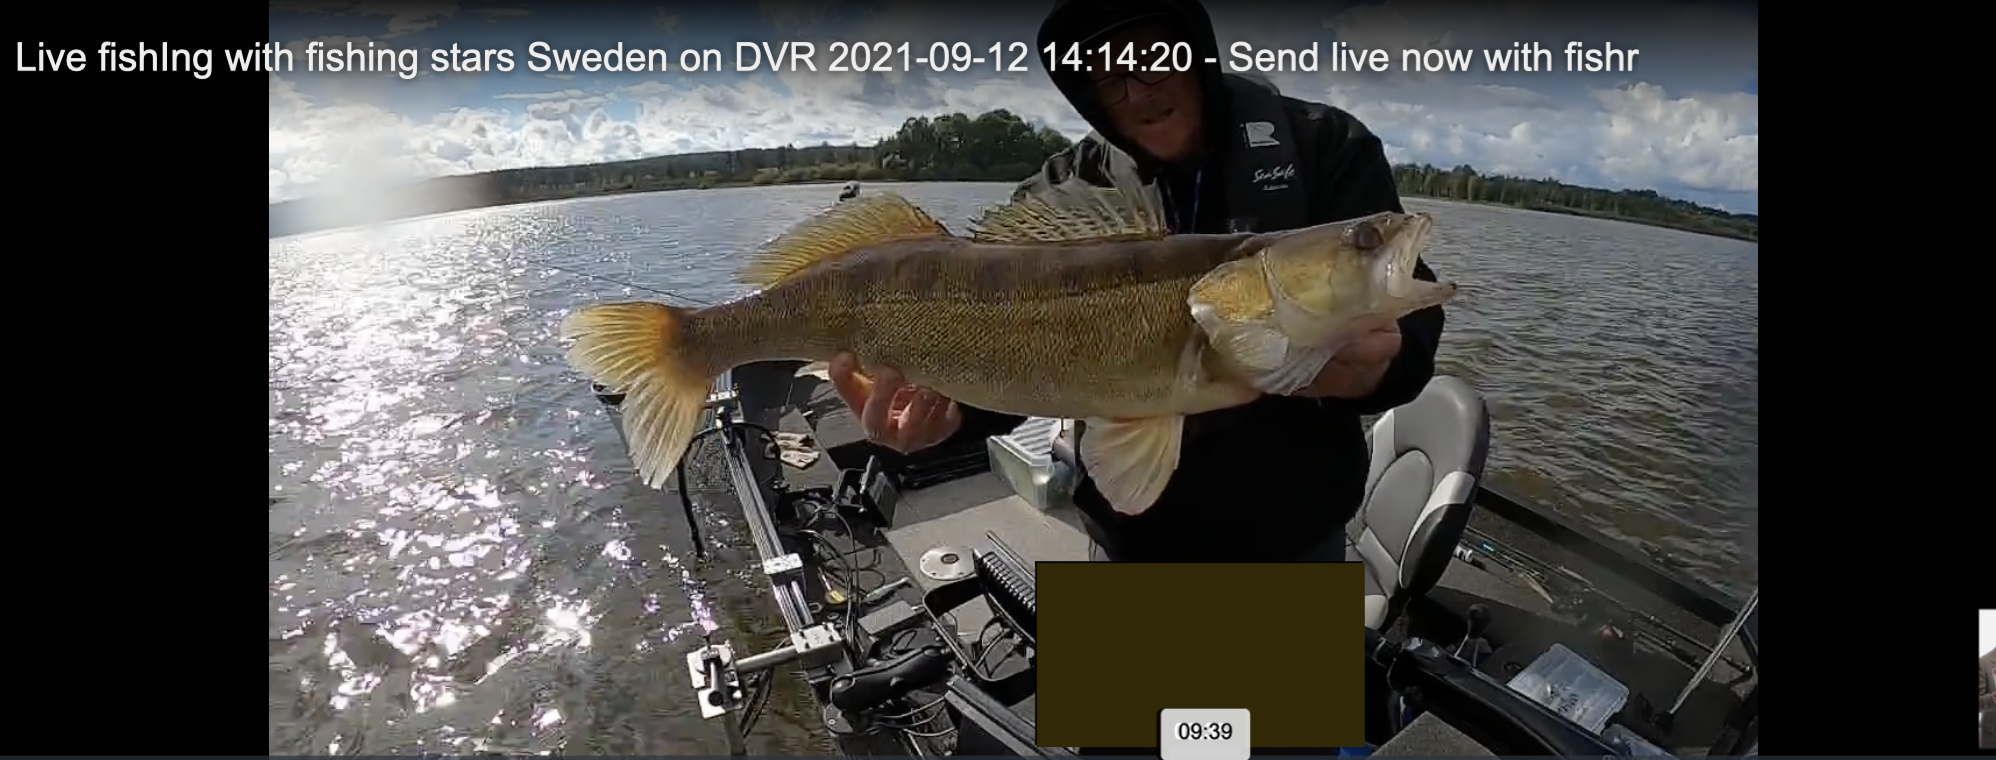 Live fishIng with fishing stars Sweden on DVR 2021-09-12 14:14:20